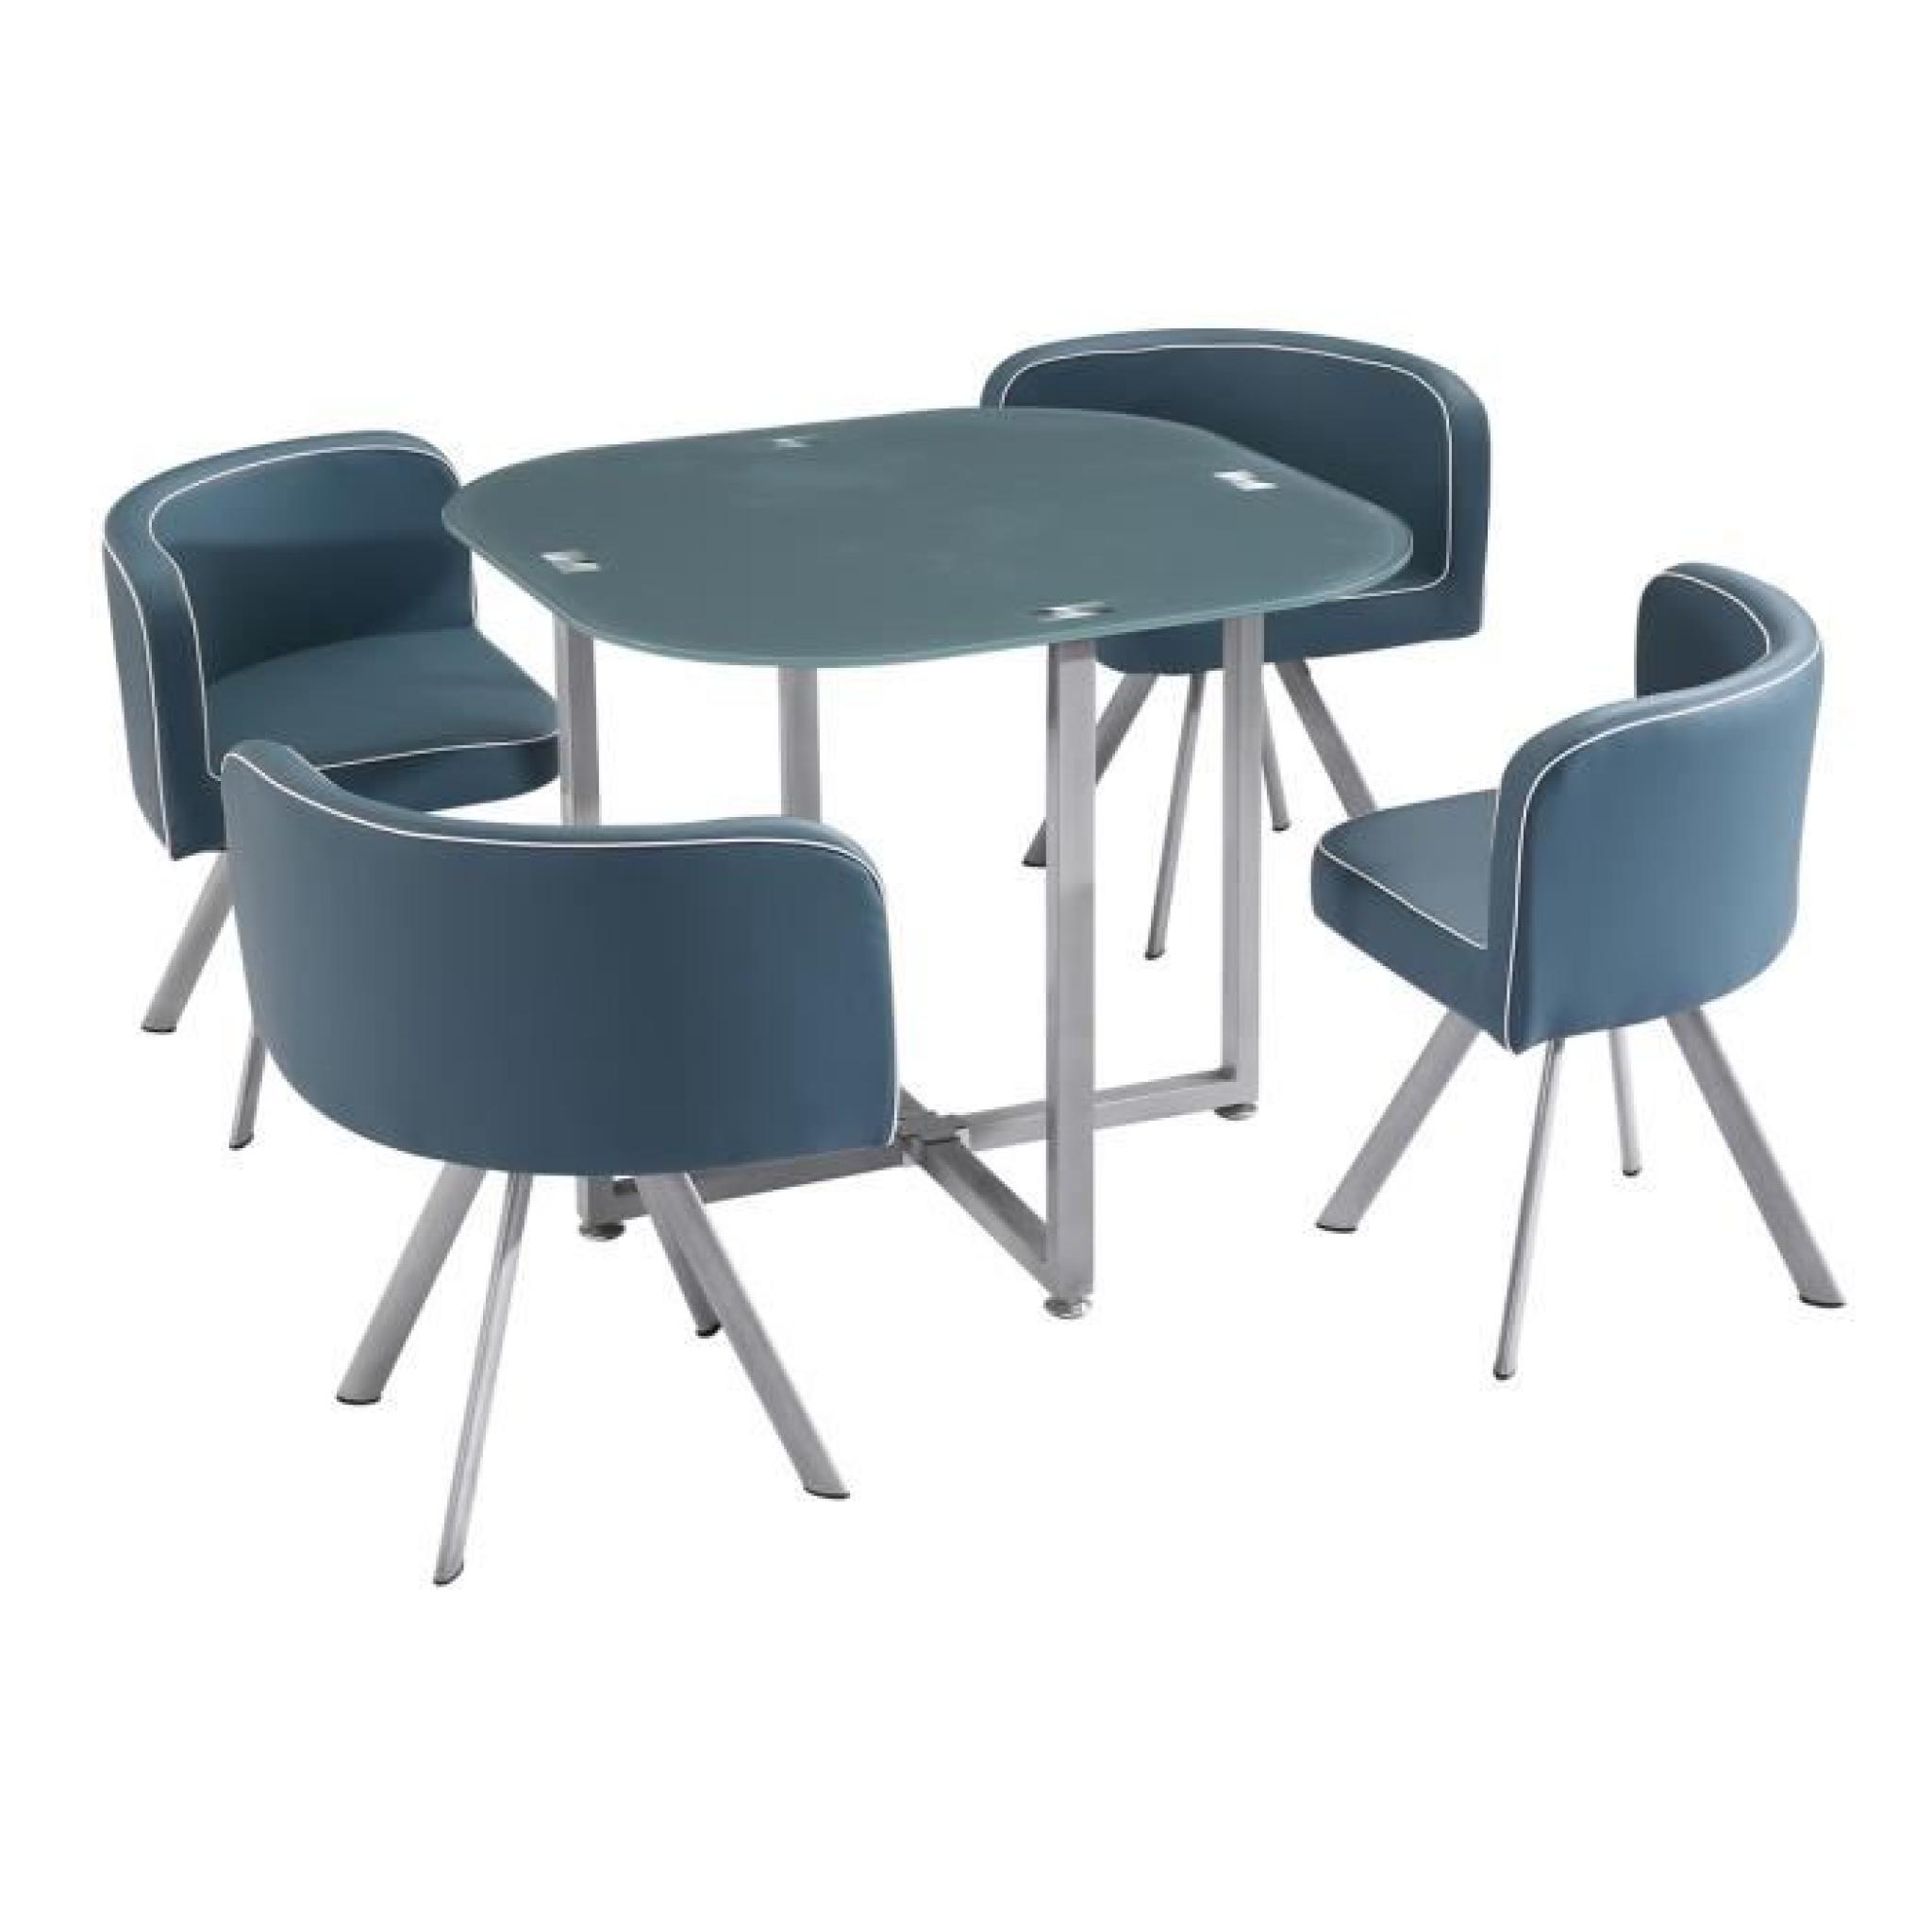 Ensemble table a manger et chaise pas cher maison design for Table 4 chaises pas cher